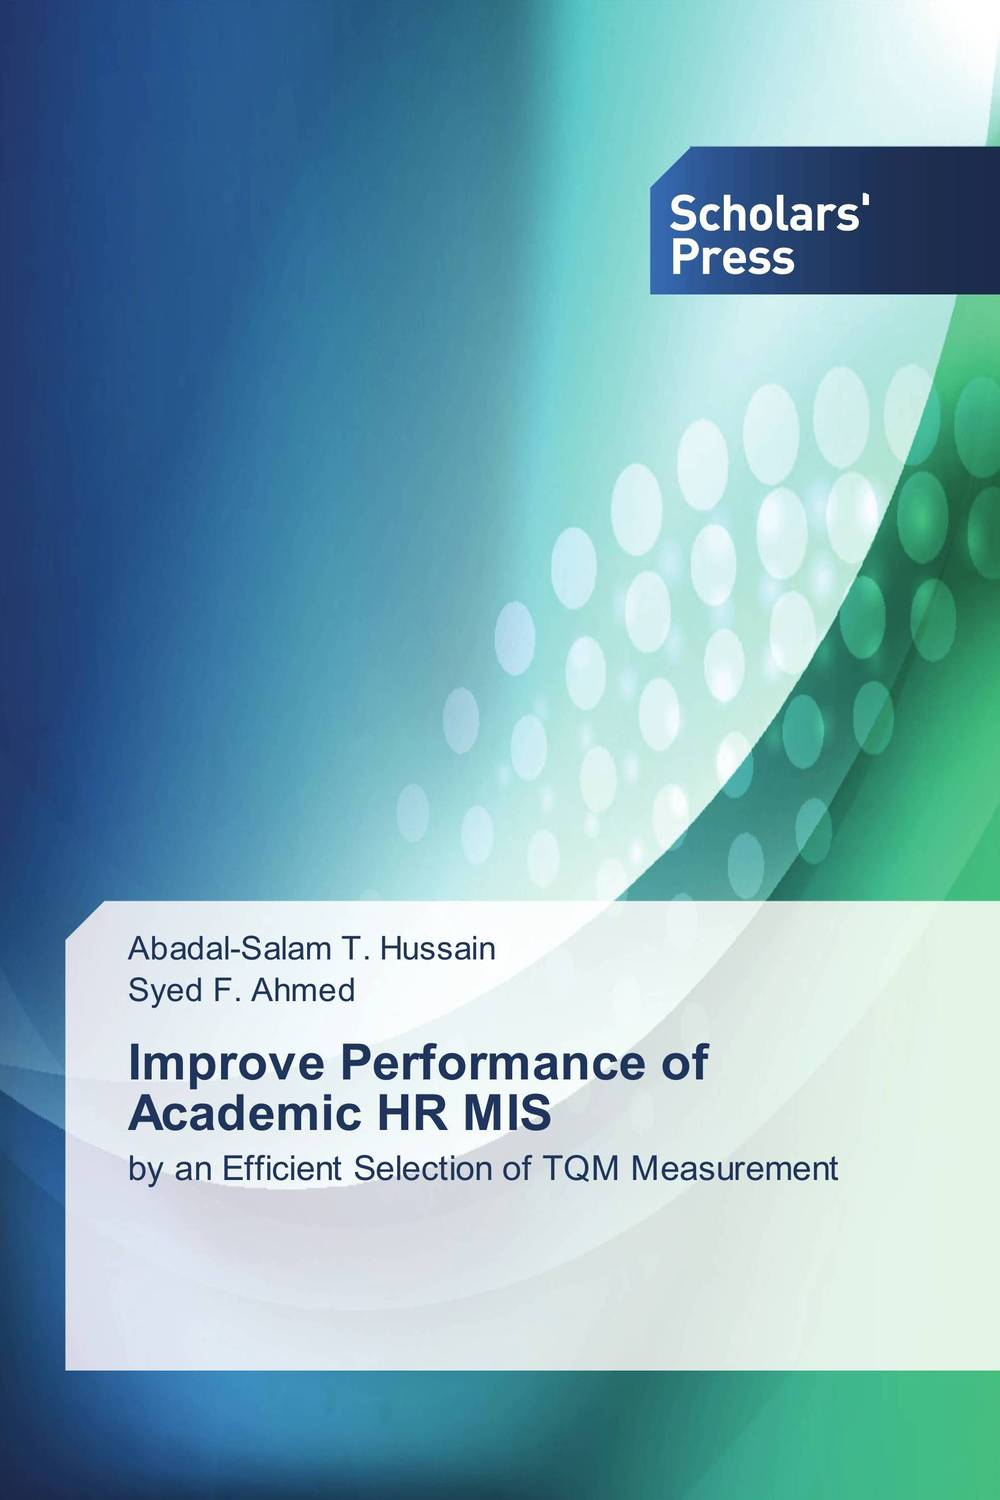 Improve Performance of Academic HR MIS technology based employee training and organizational performance